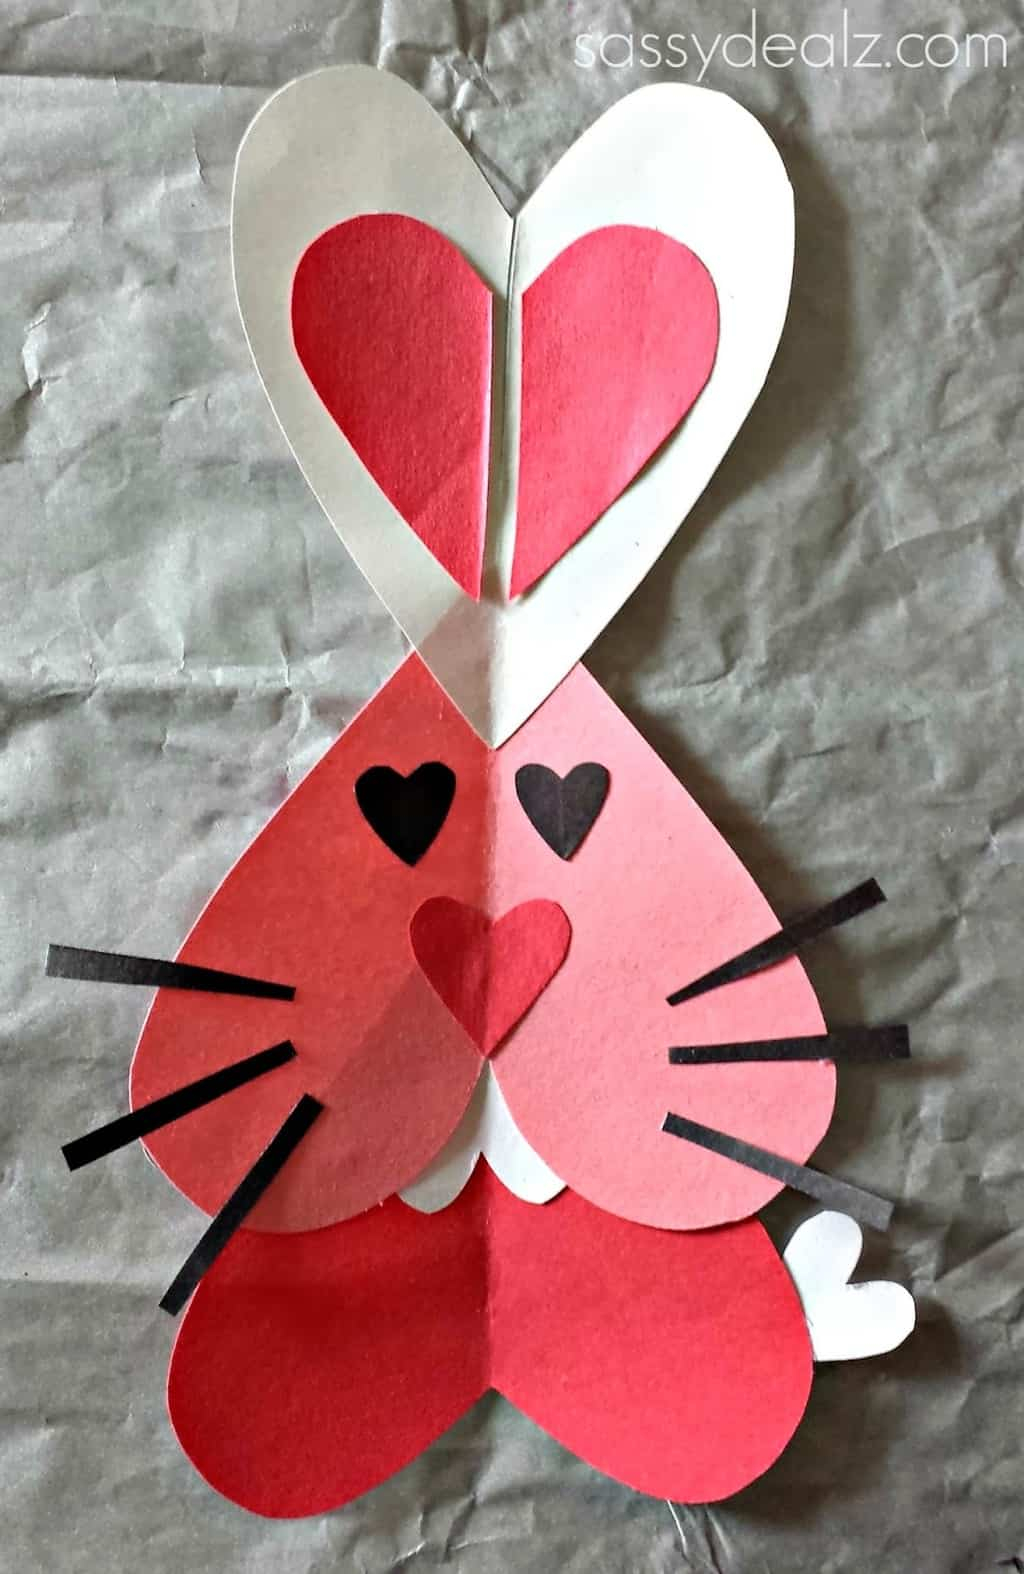 Simple and Cute Construction Paper Crafts for Kids 10 Fun And Fluffy Bunny Crafts For Kids Socal Field Trips